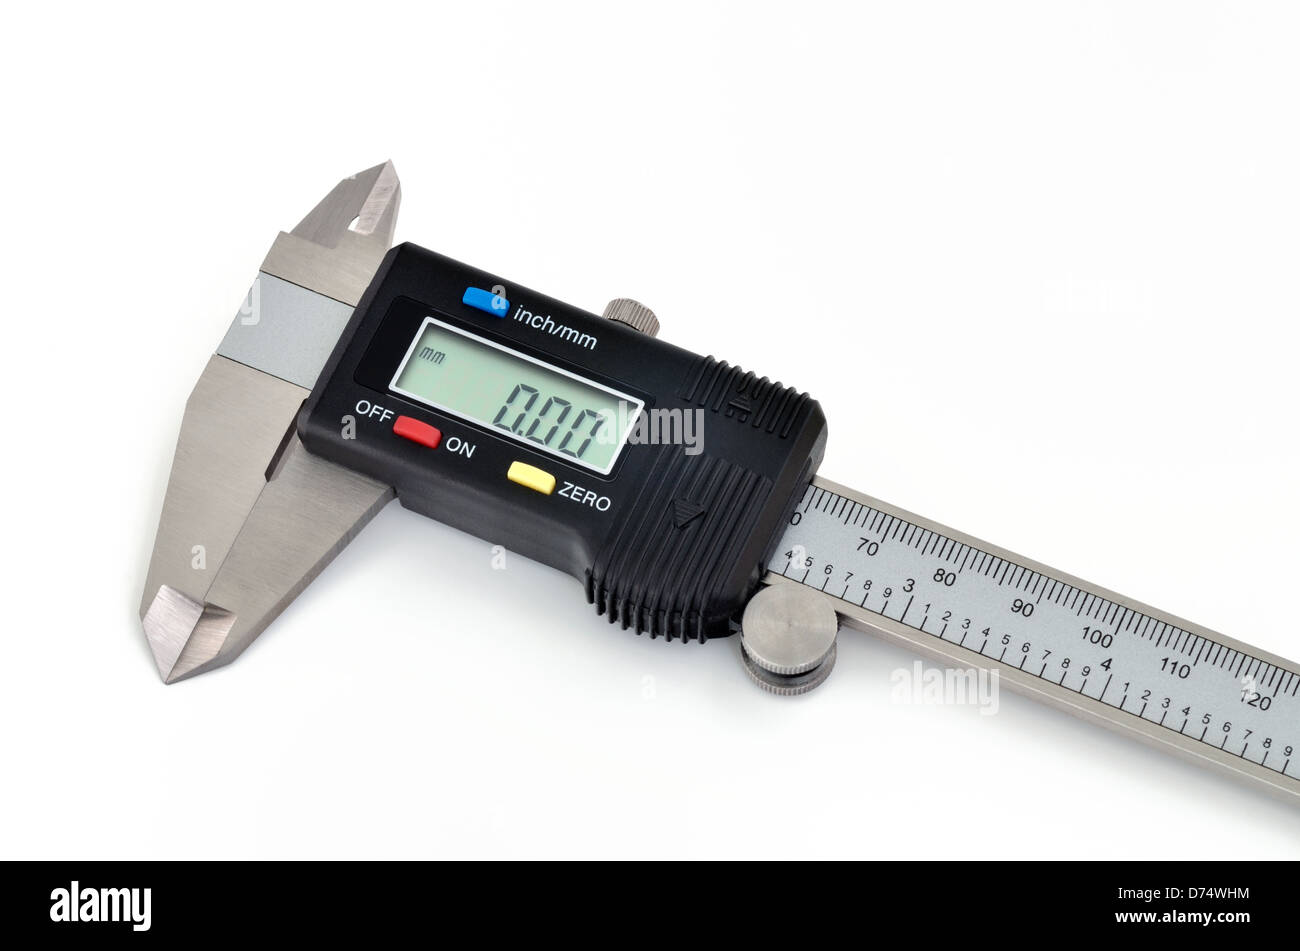 Digital Caliper - Stock Image